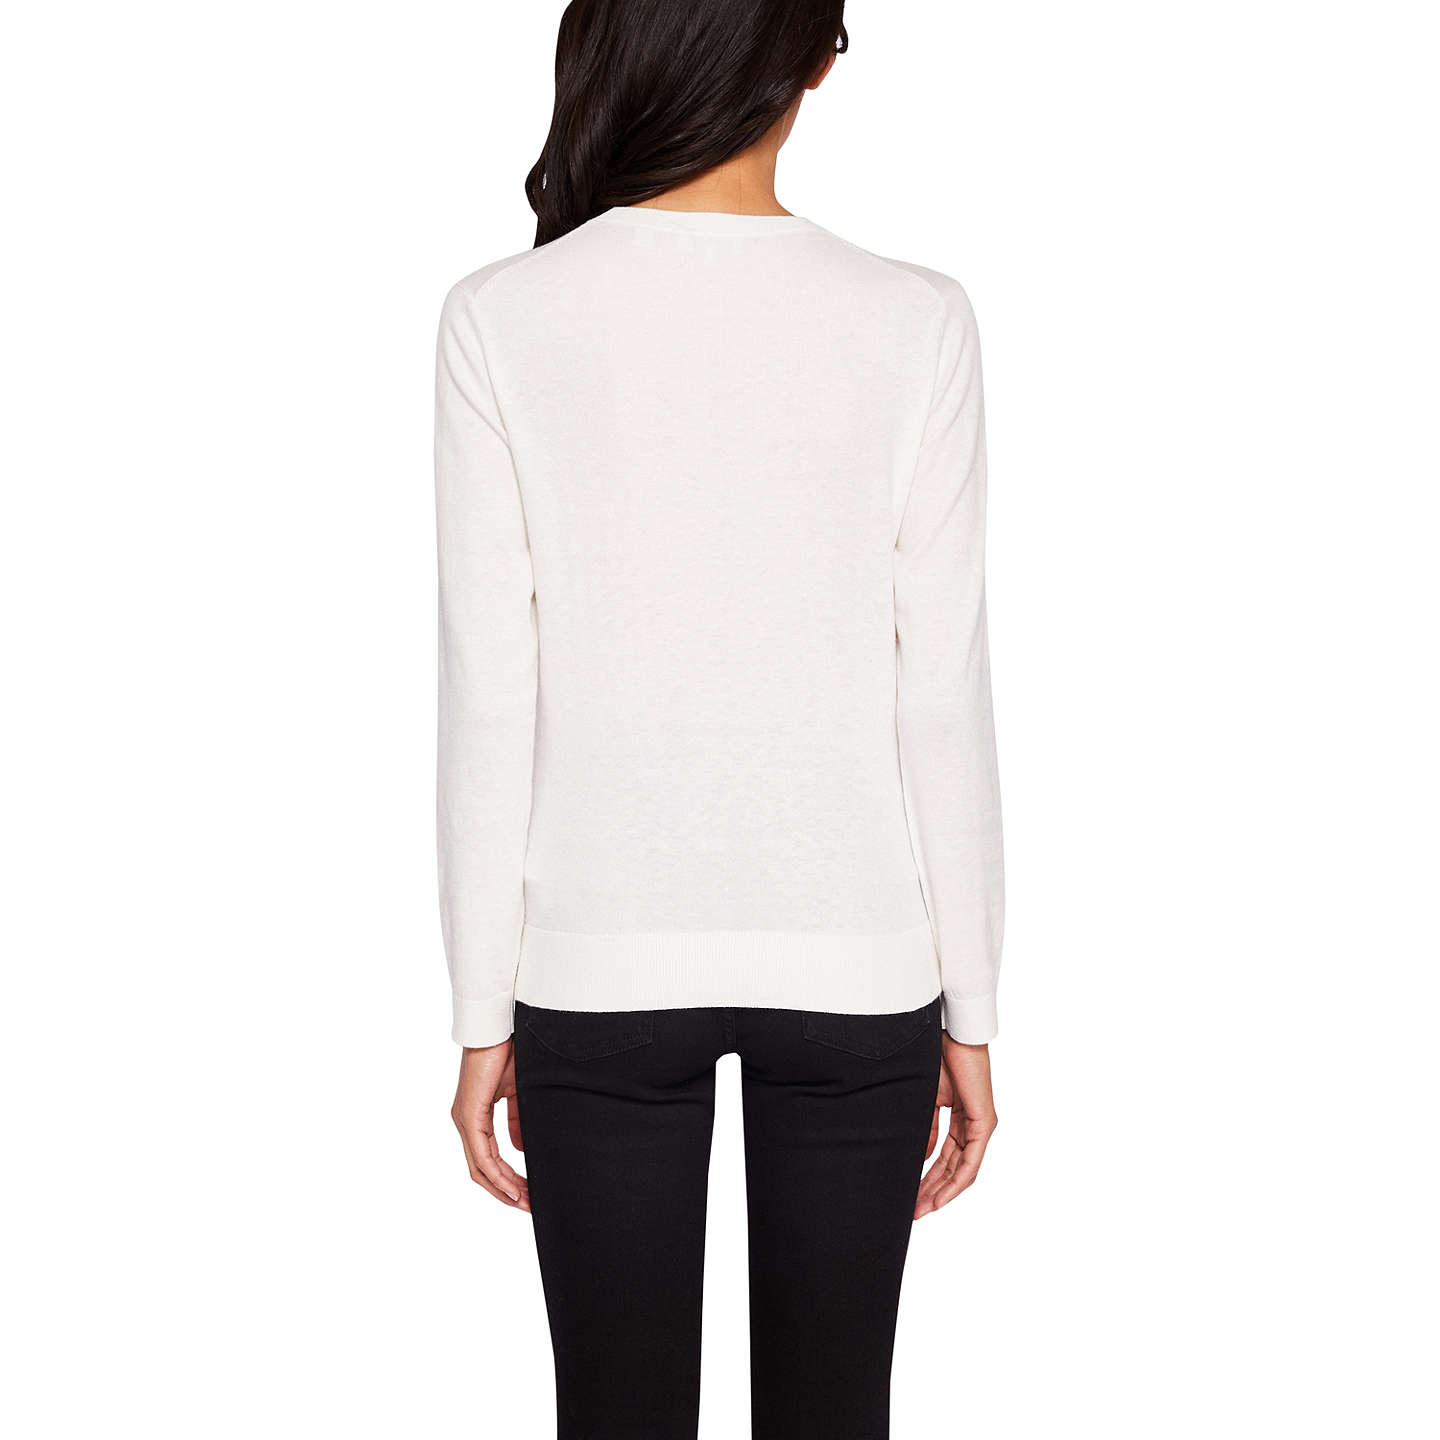 BuyTed Baker Bow Detail Jumper, Ivory, 6 Online at johnlewis.com